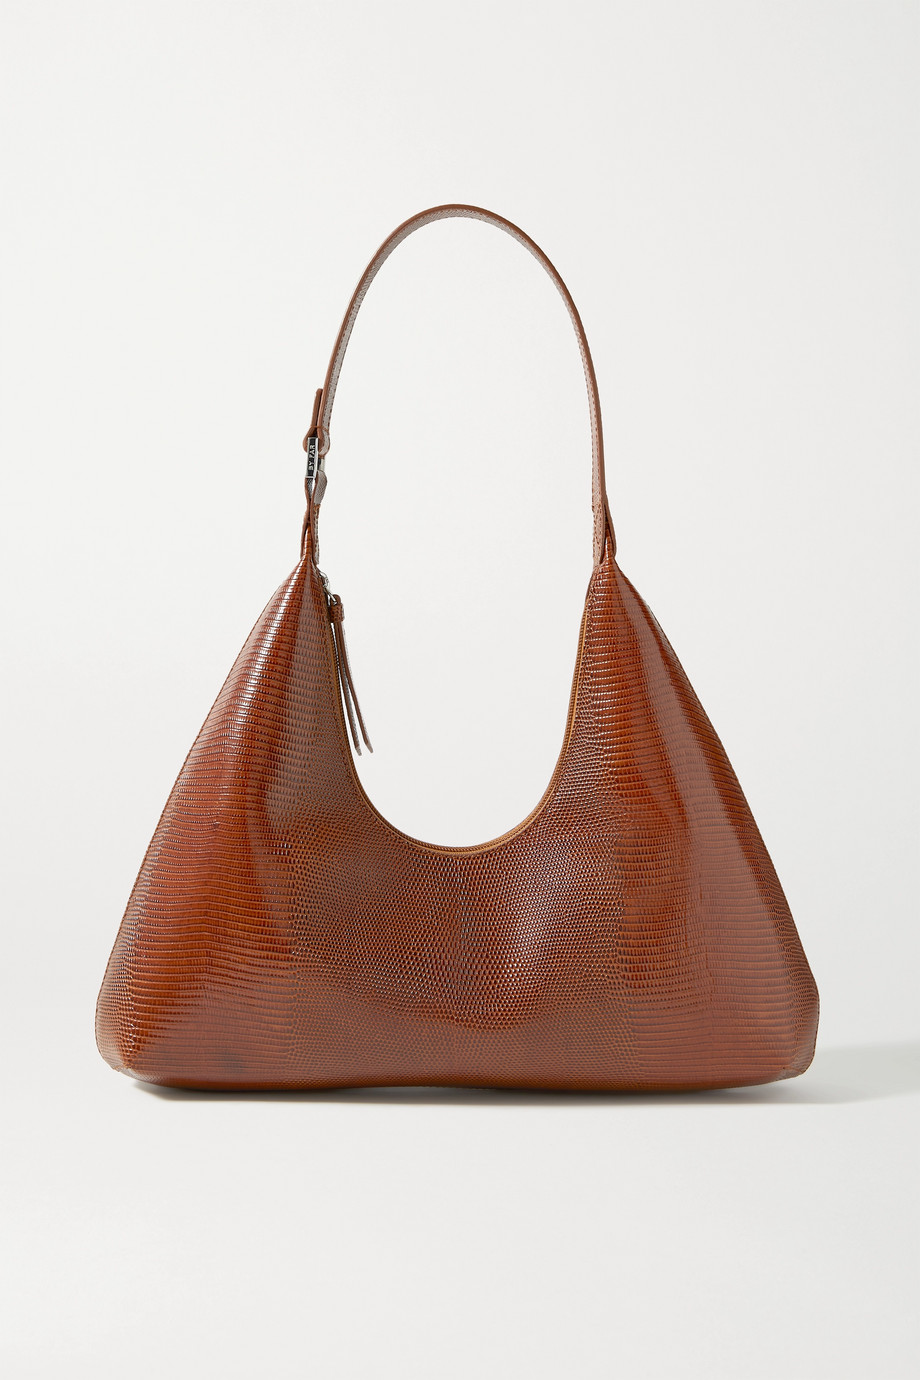 BY FAR Amber lizard-effect leather shoulder bag